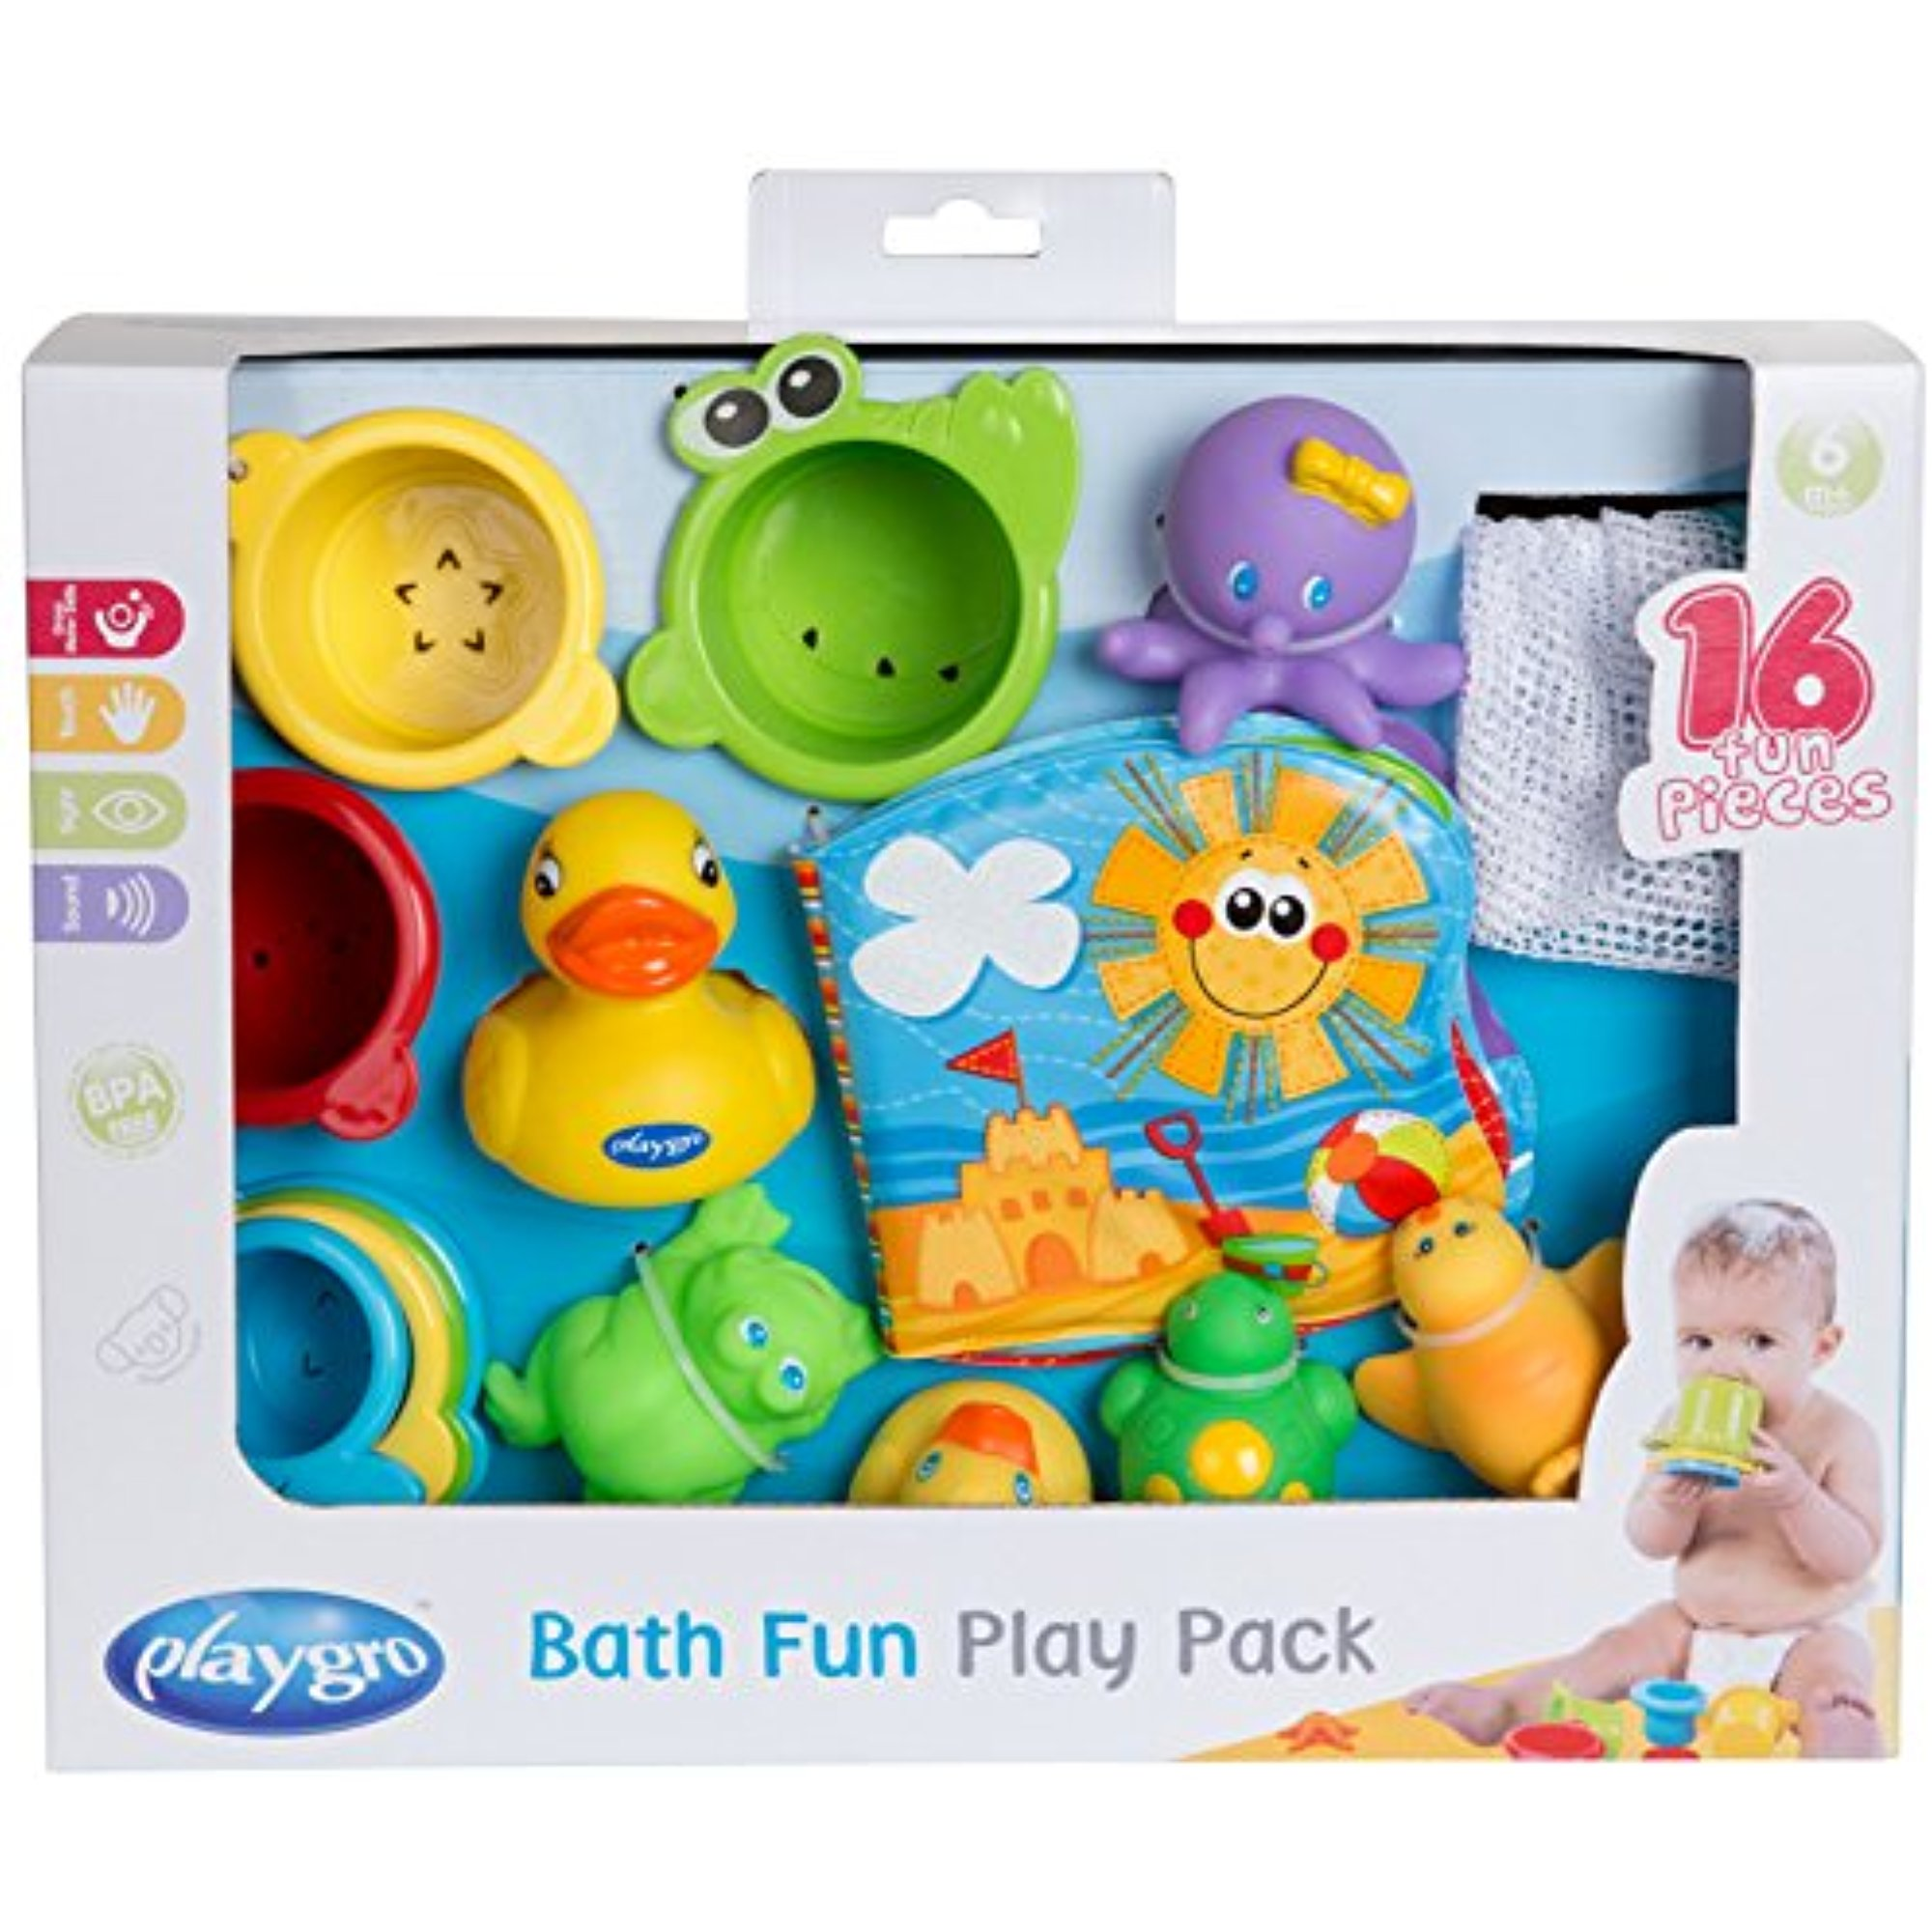 Playgro Bath Fun Play Pack, 15 Pieces